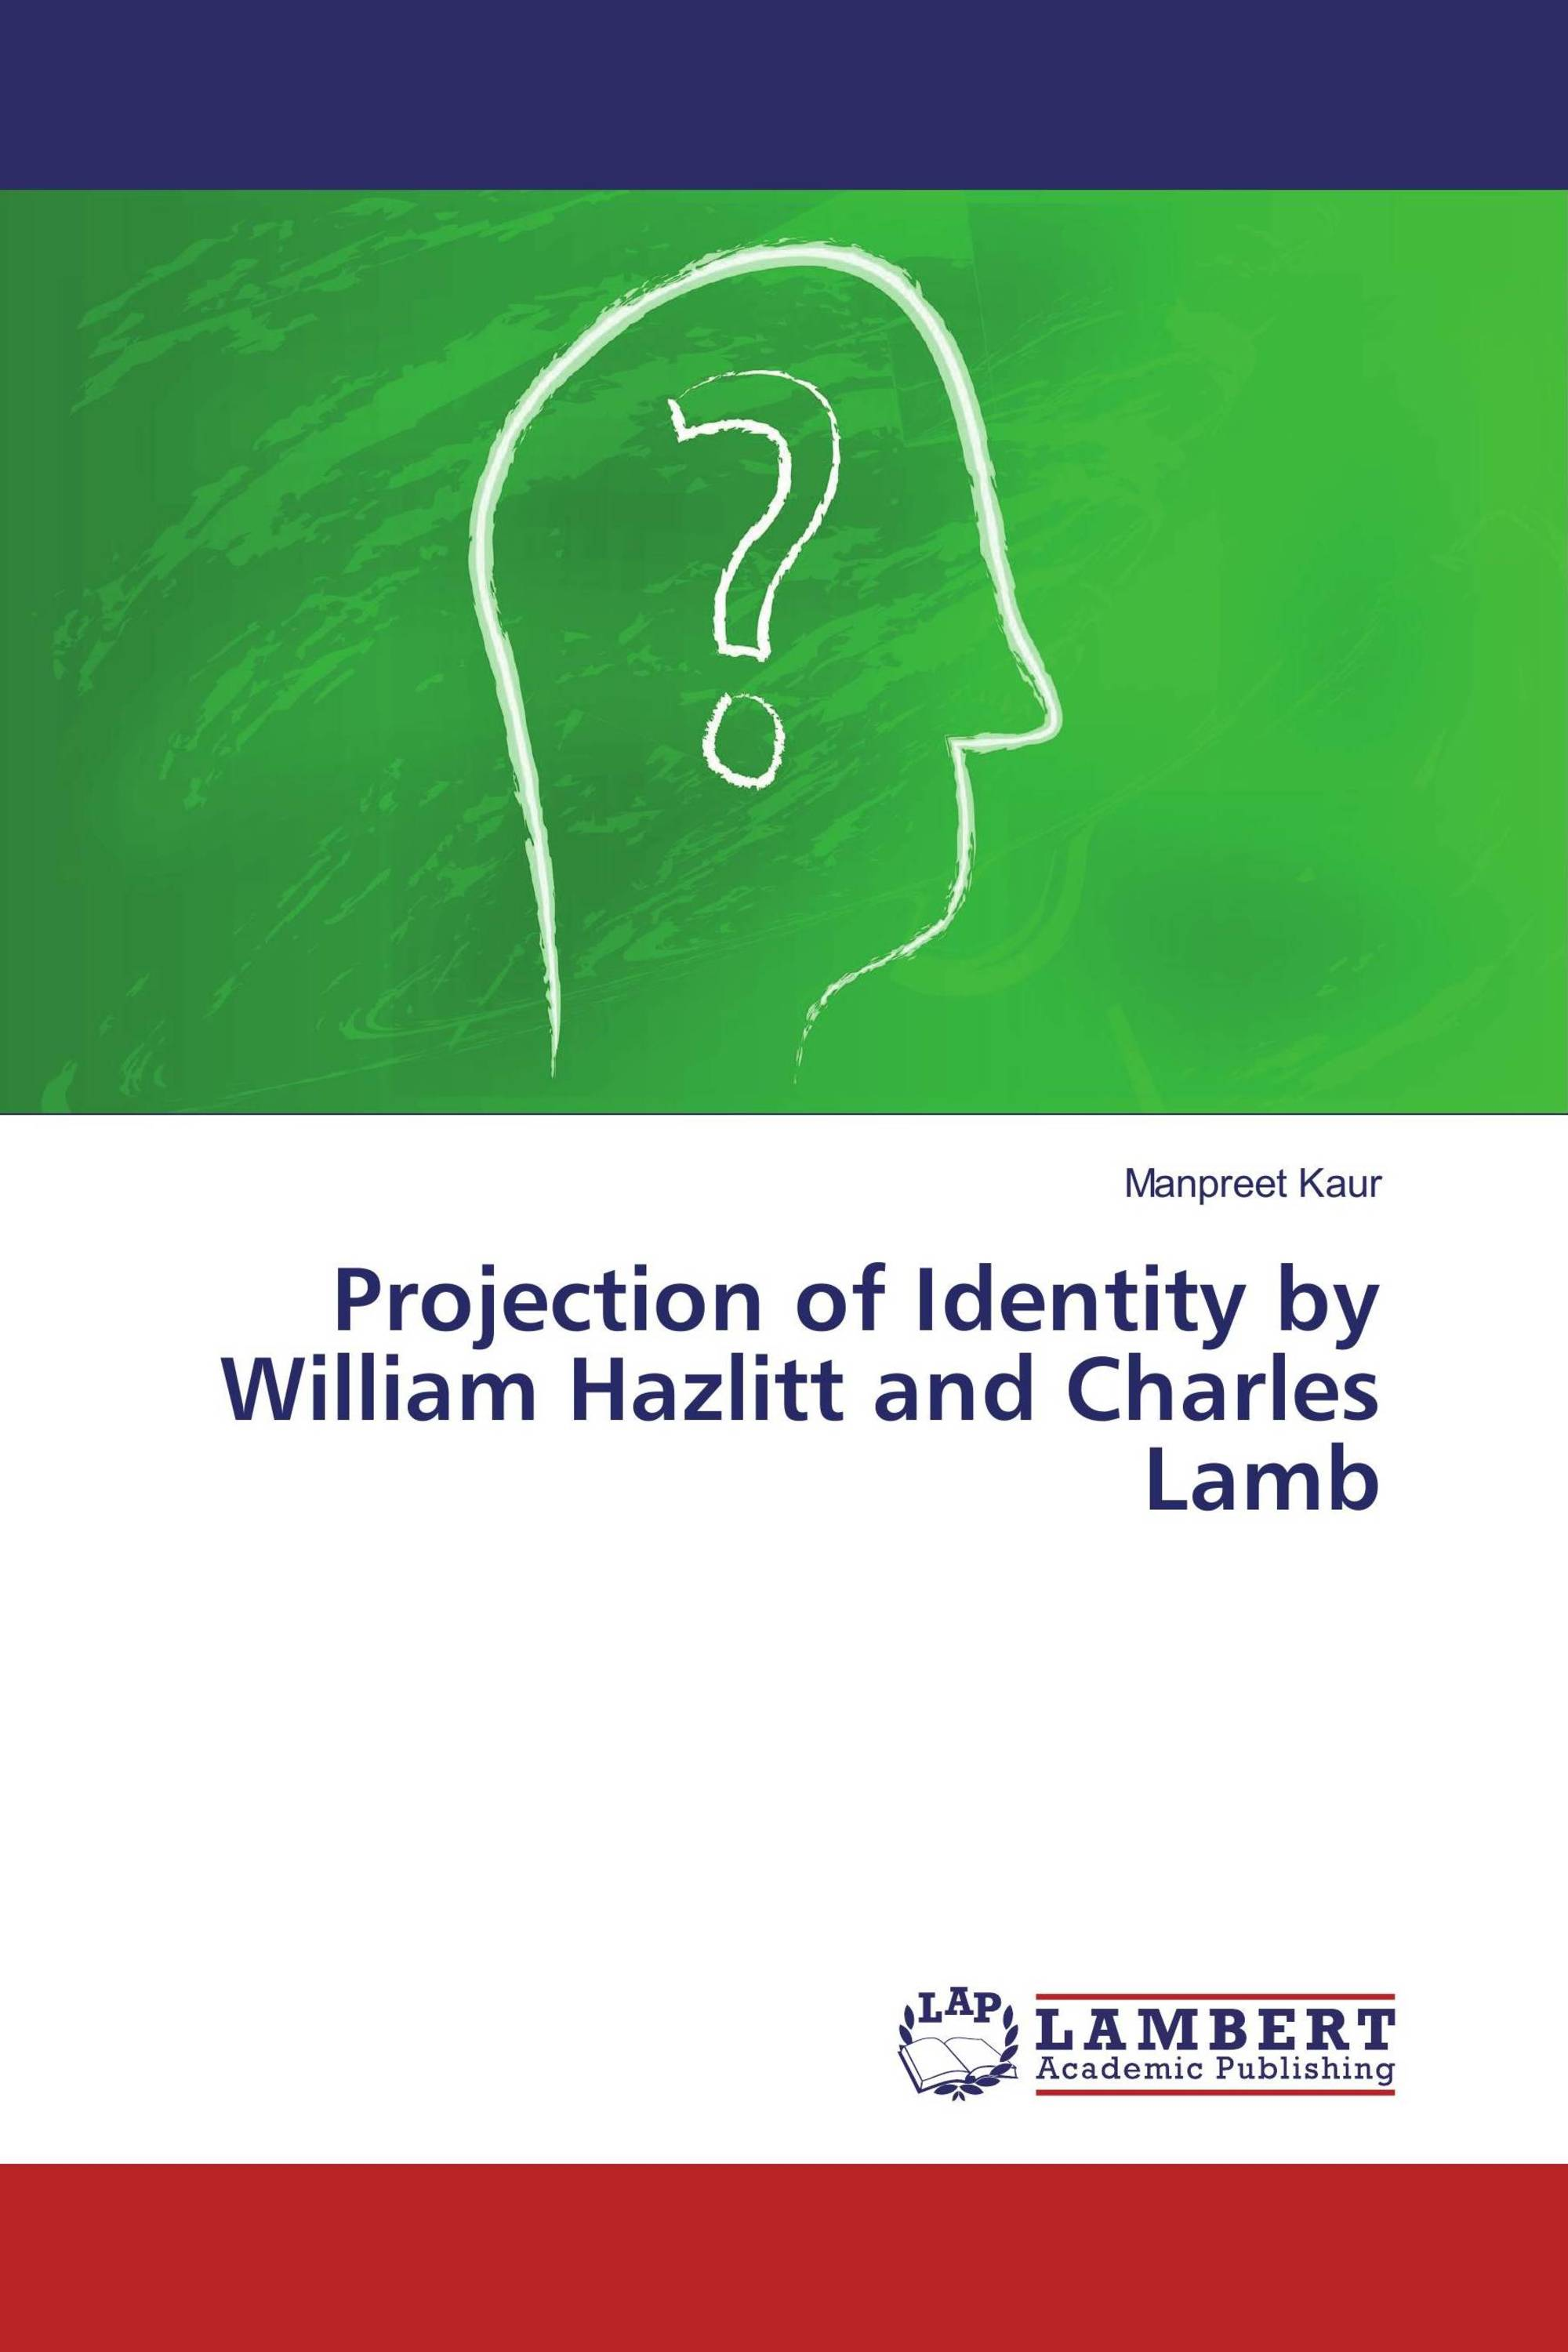 projection of identity by william hazlitt and charles lamb 978 3 it s time to publish